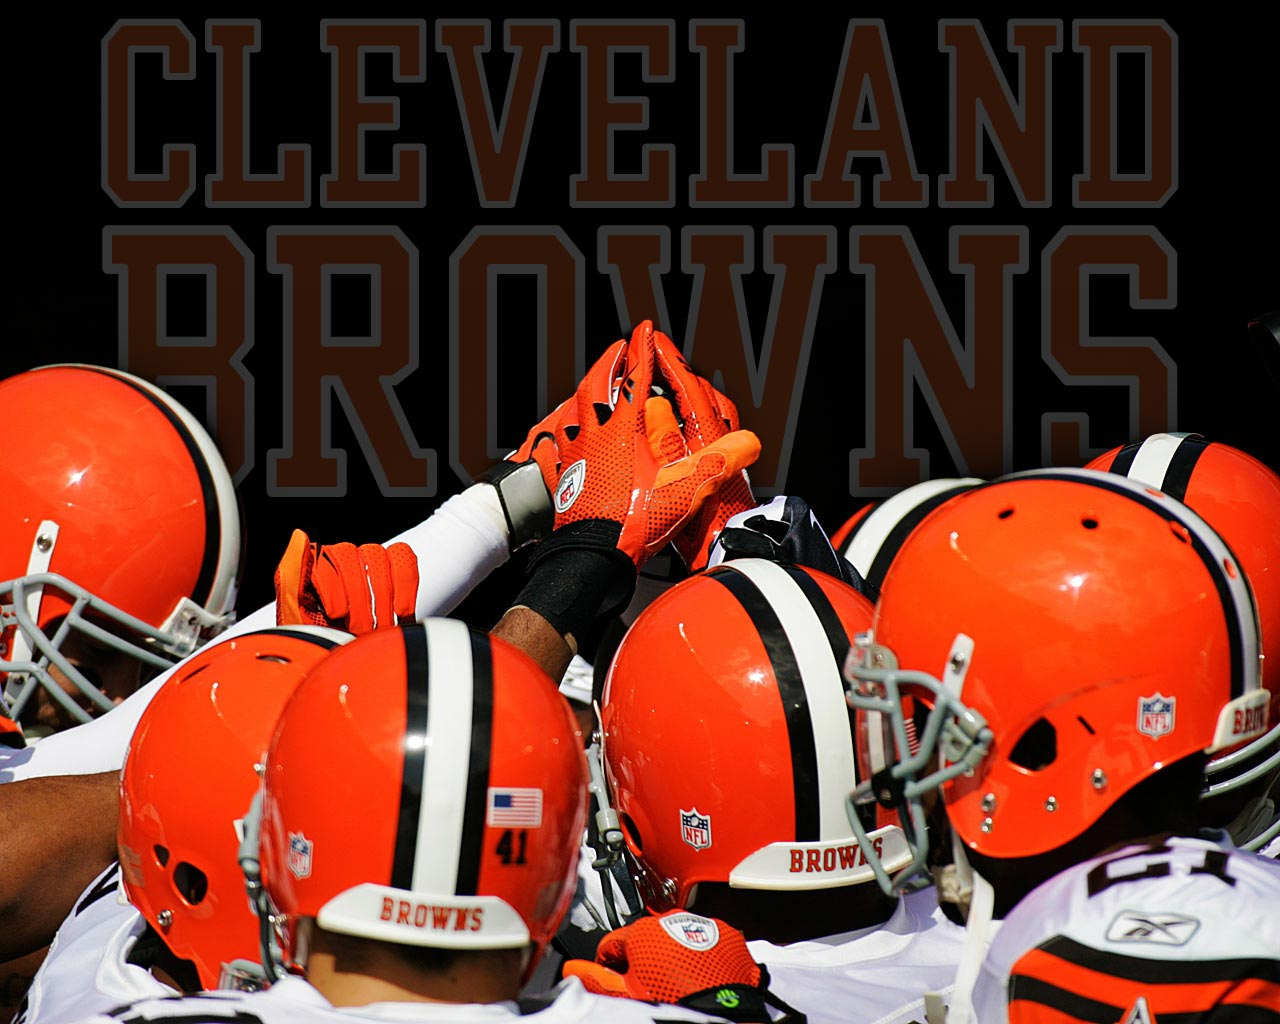 73 Cleveland Browns Backgrounds On Wallpapersafari